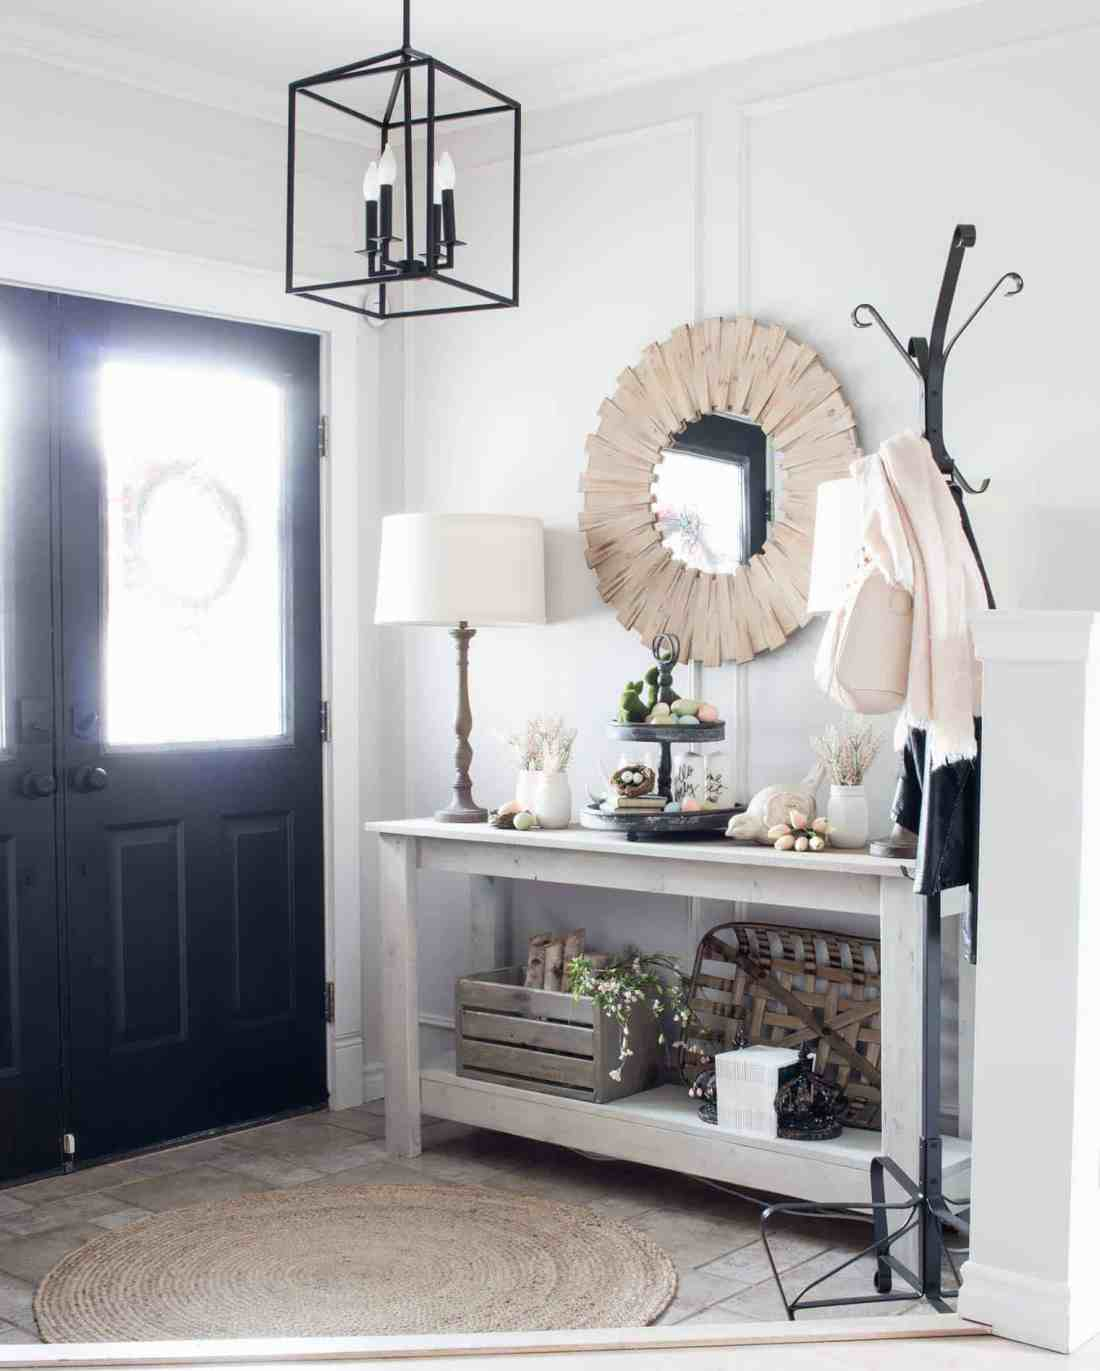 black doors with neutral and blush pink spring decor in entry